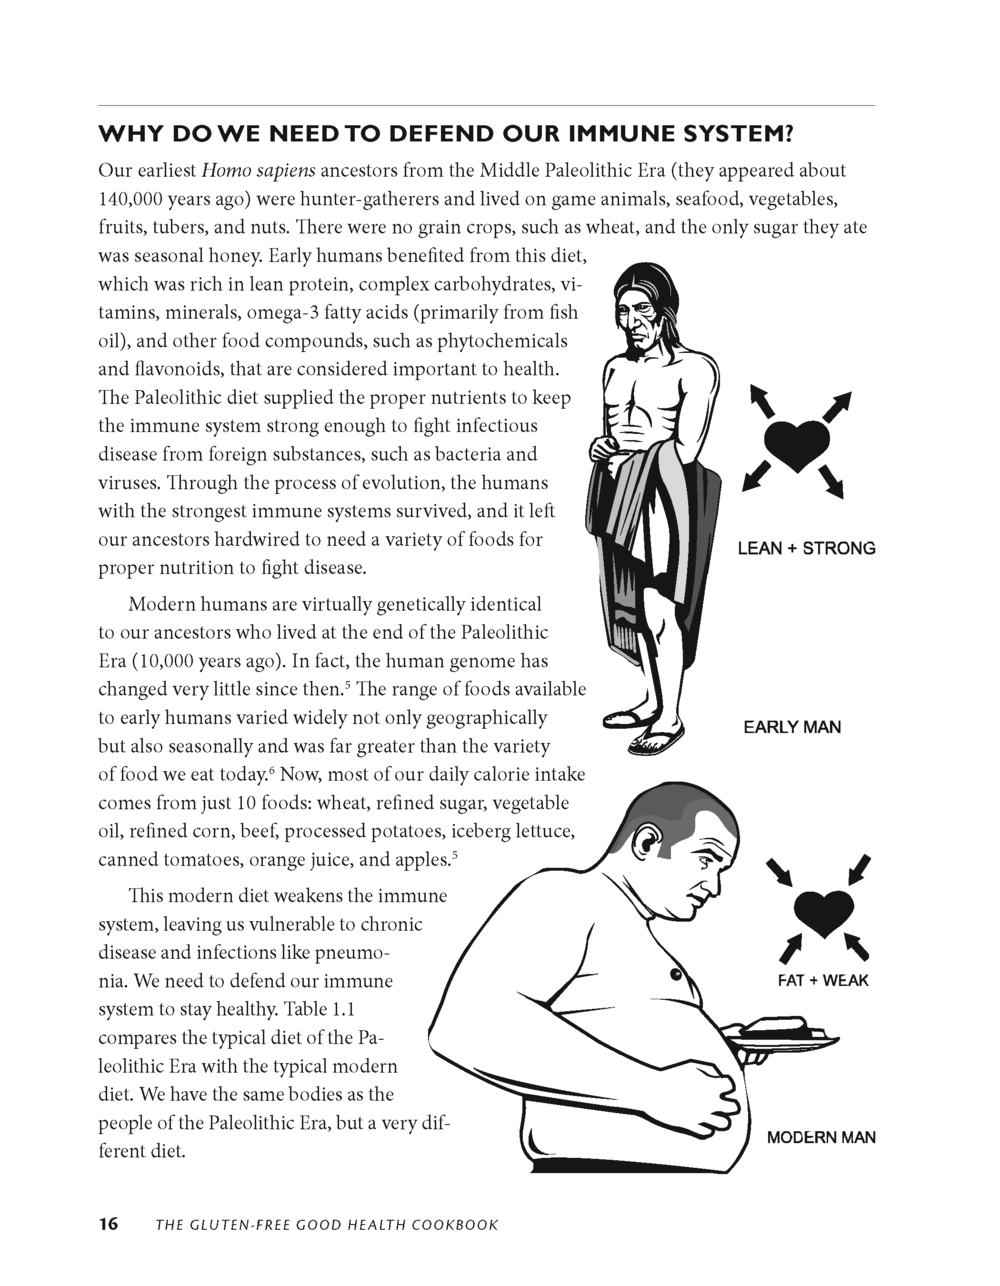 Gluten-Free Good Health Cookbook_Page_05.png